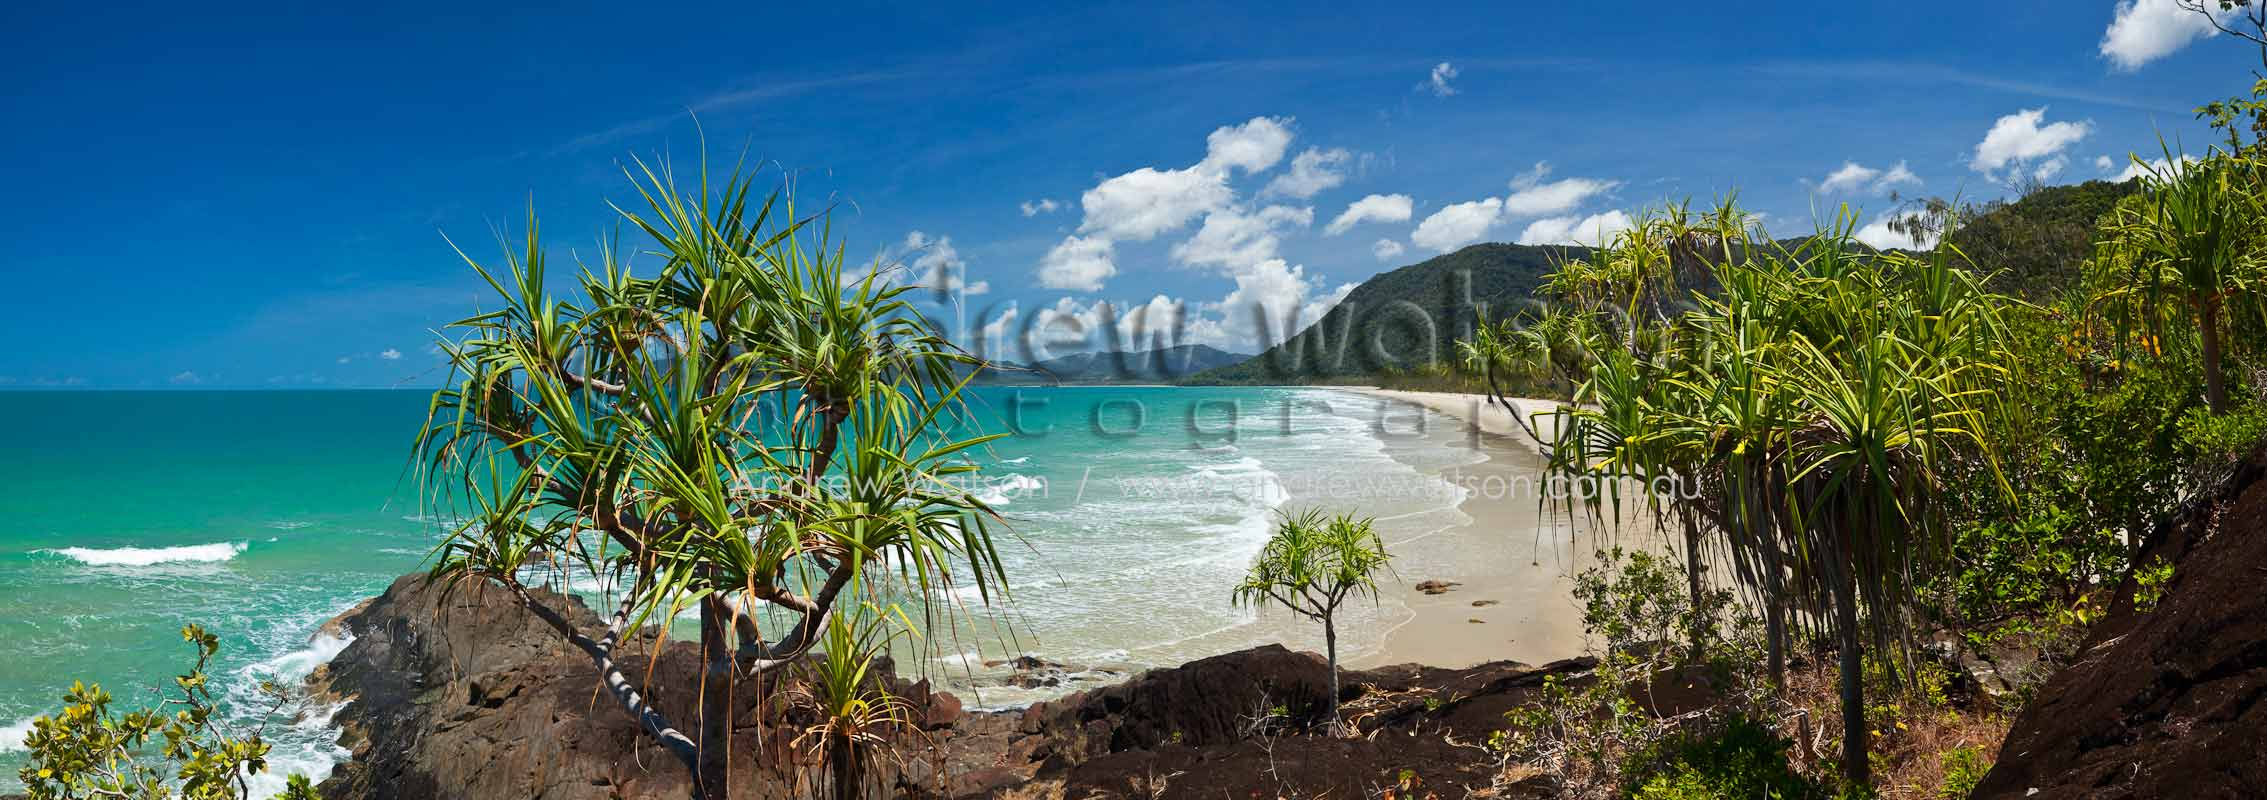 View along Noah's BeachDaintree National Park, North QueenslandImage available for licensing or as a fine-art print... please enquire